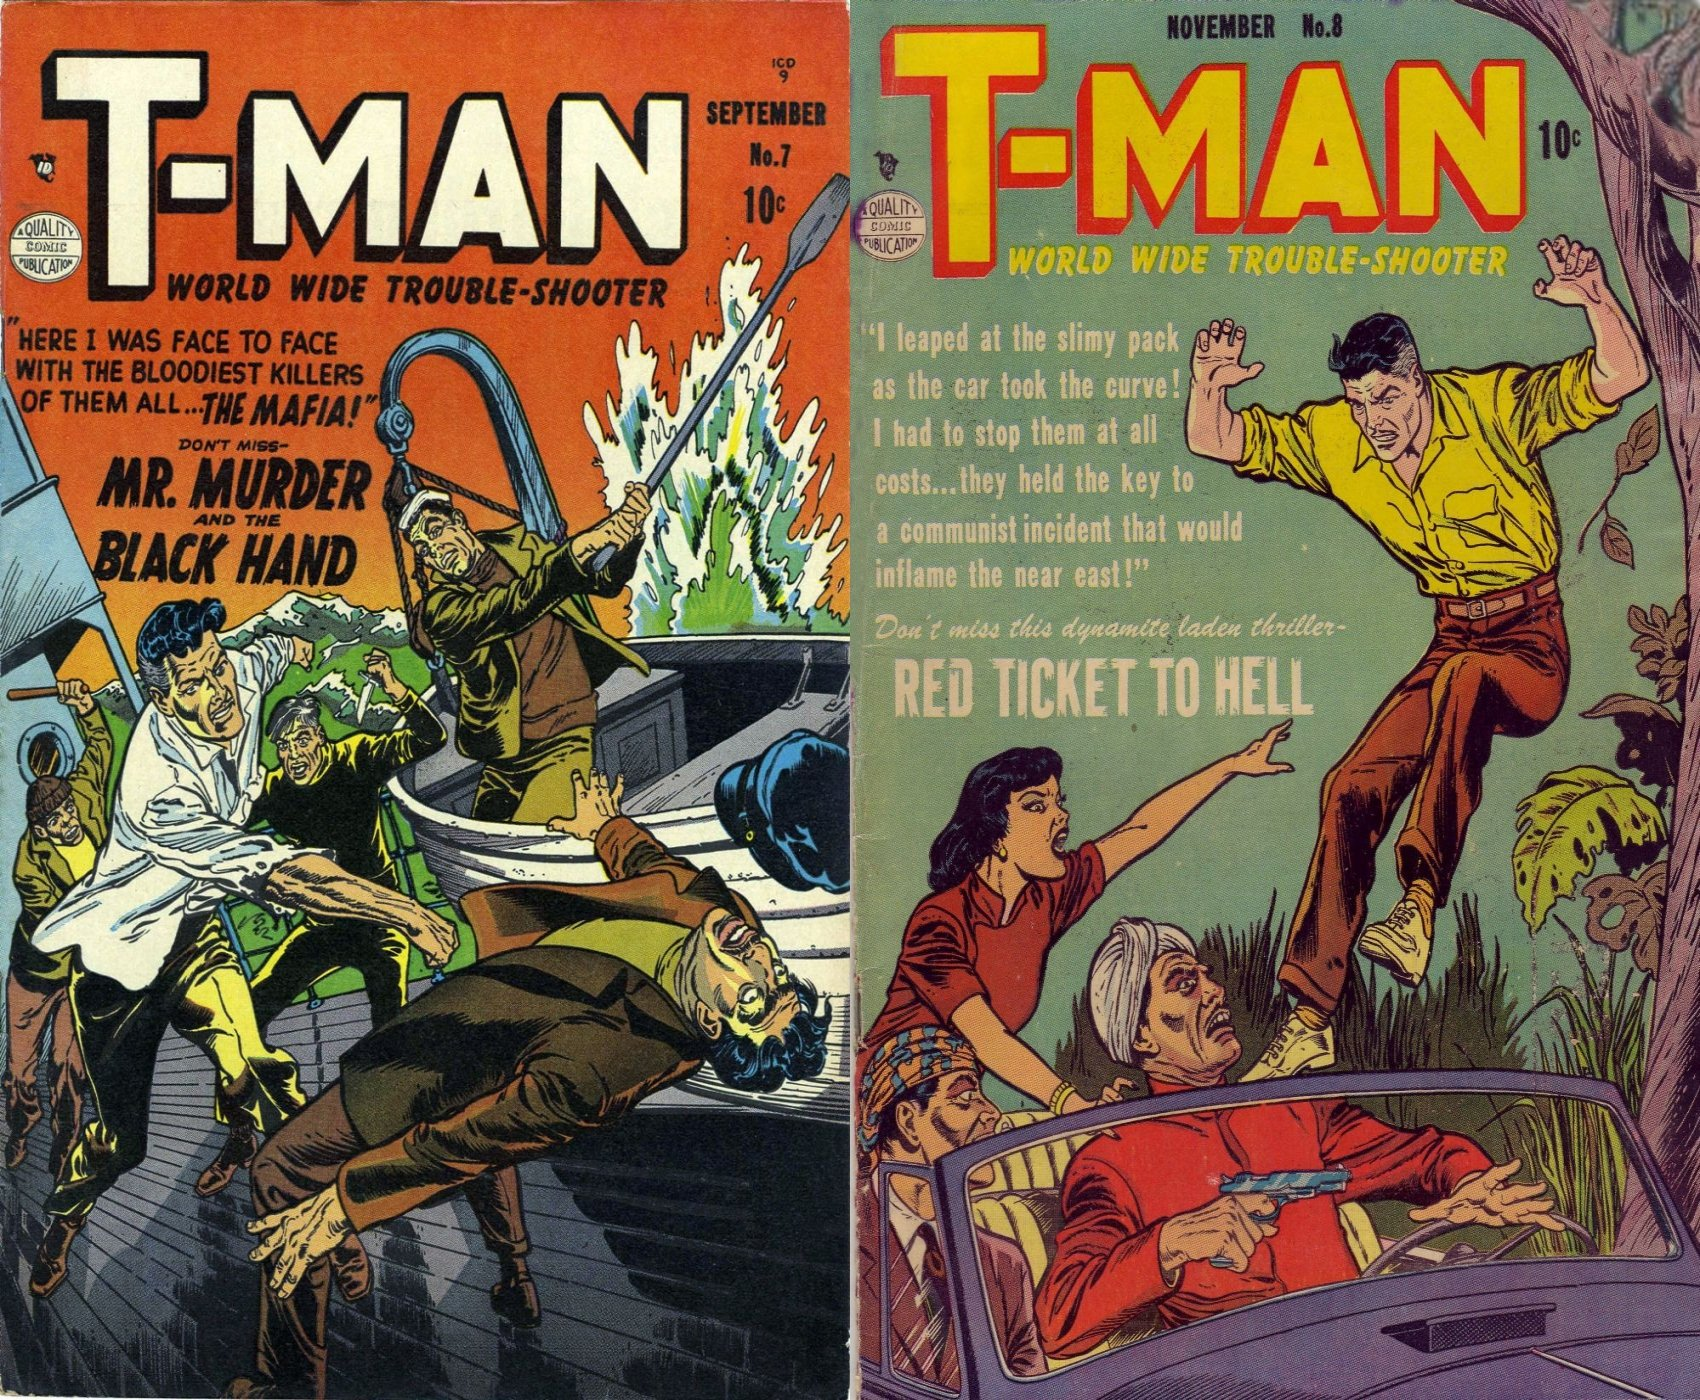 T man. Issues 7 and 8. World wide trouble shooter. Features Mr Murder and Red ticket to hell. Black Hand, Golden Age Digital Comics Action and Adventure.